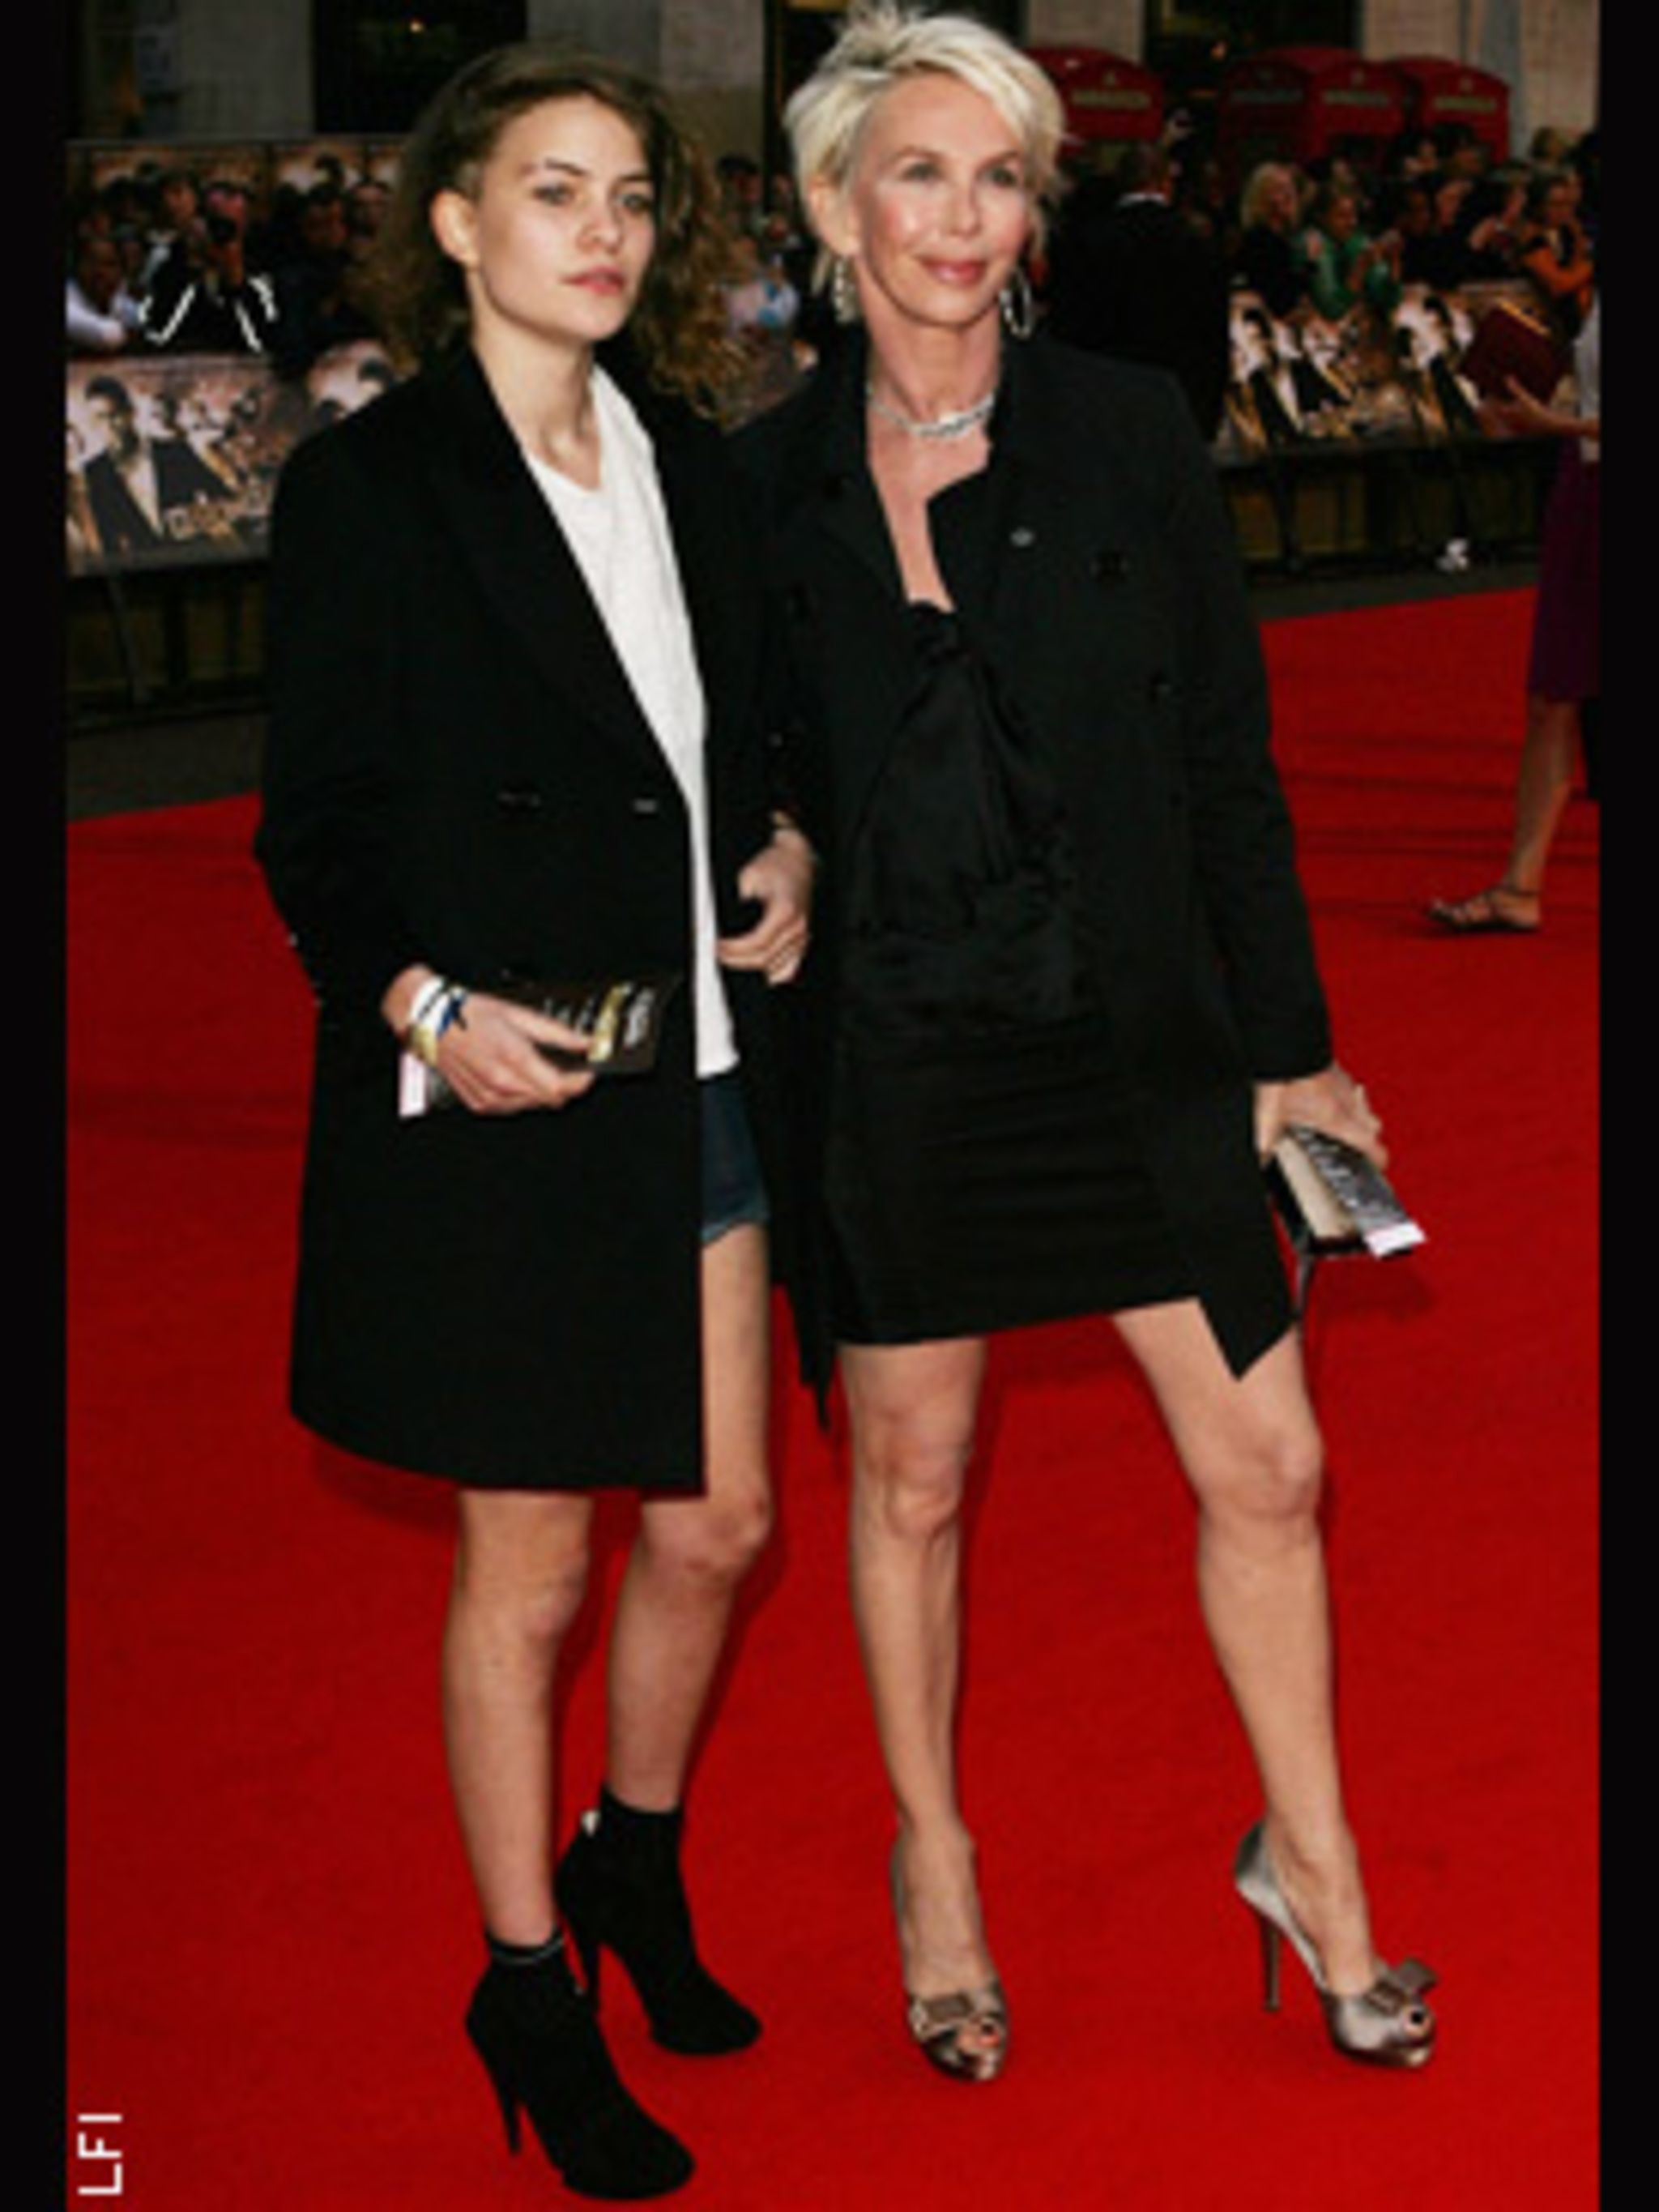 <p>Coco rocks the red carpet in micro mini denim shorts and a long length Tuxedo jacket, alongside mum Trudie Styler</p>